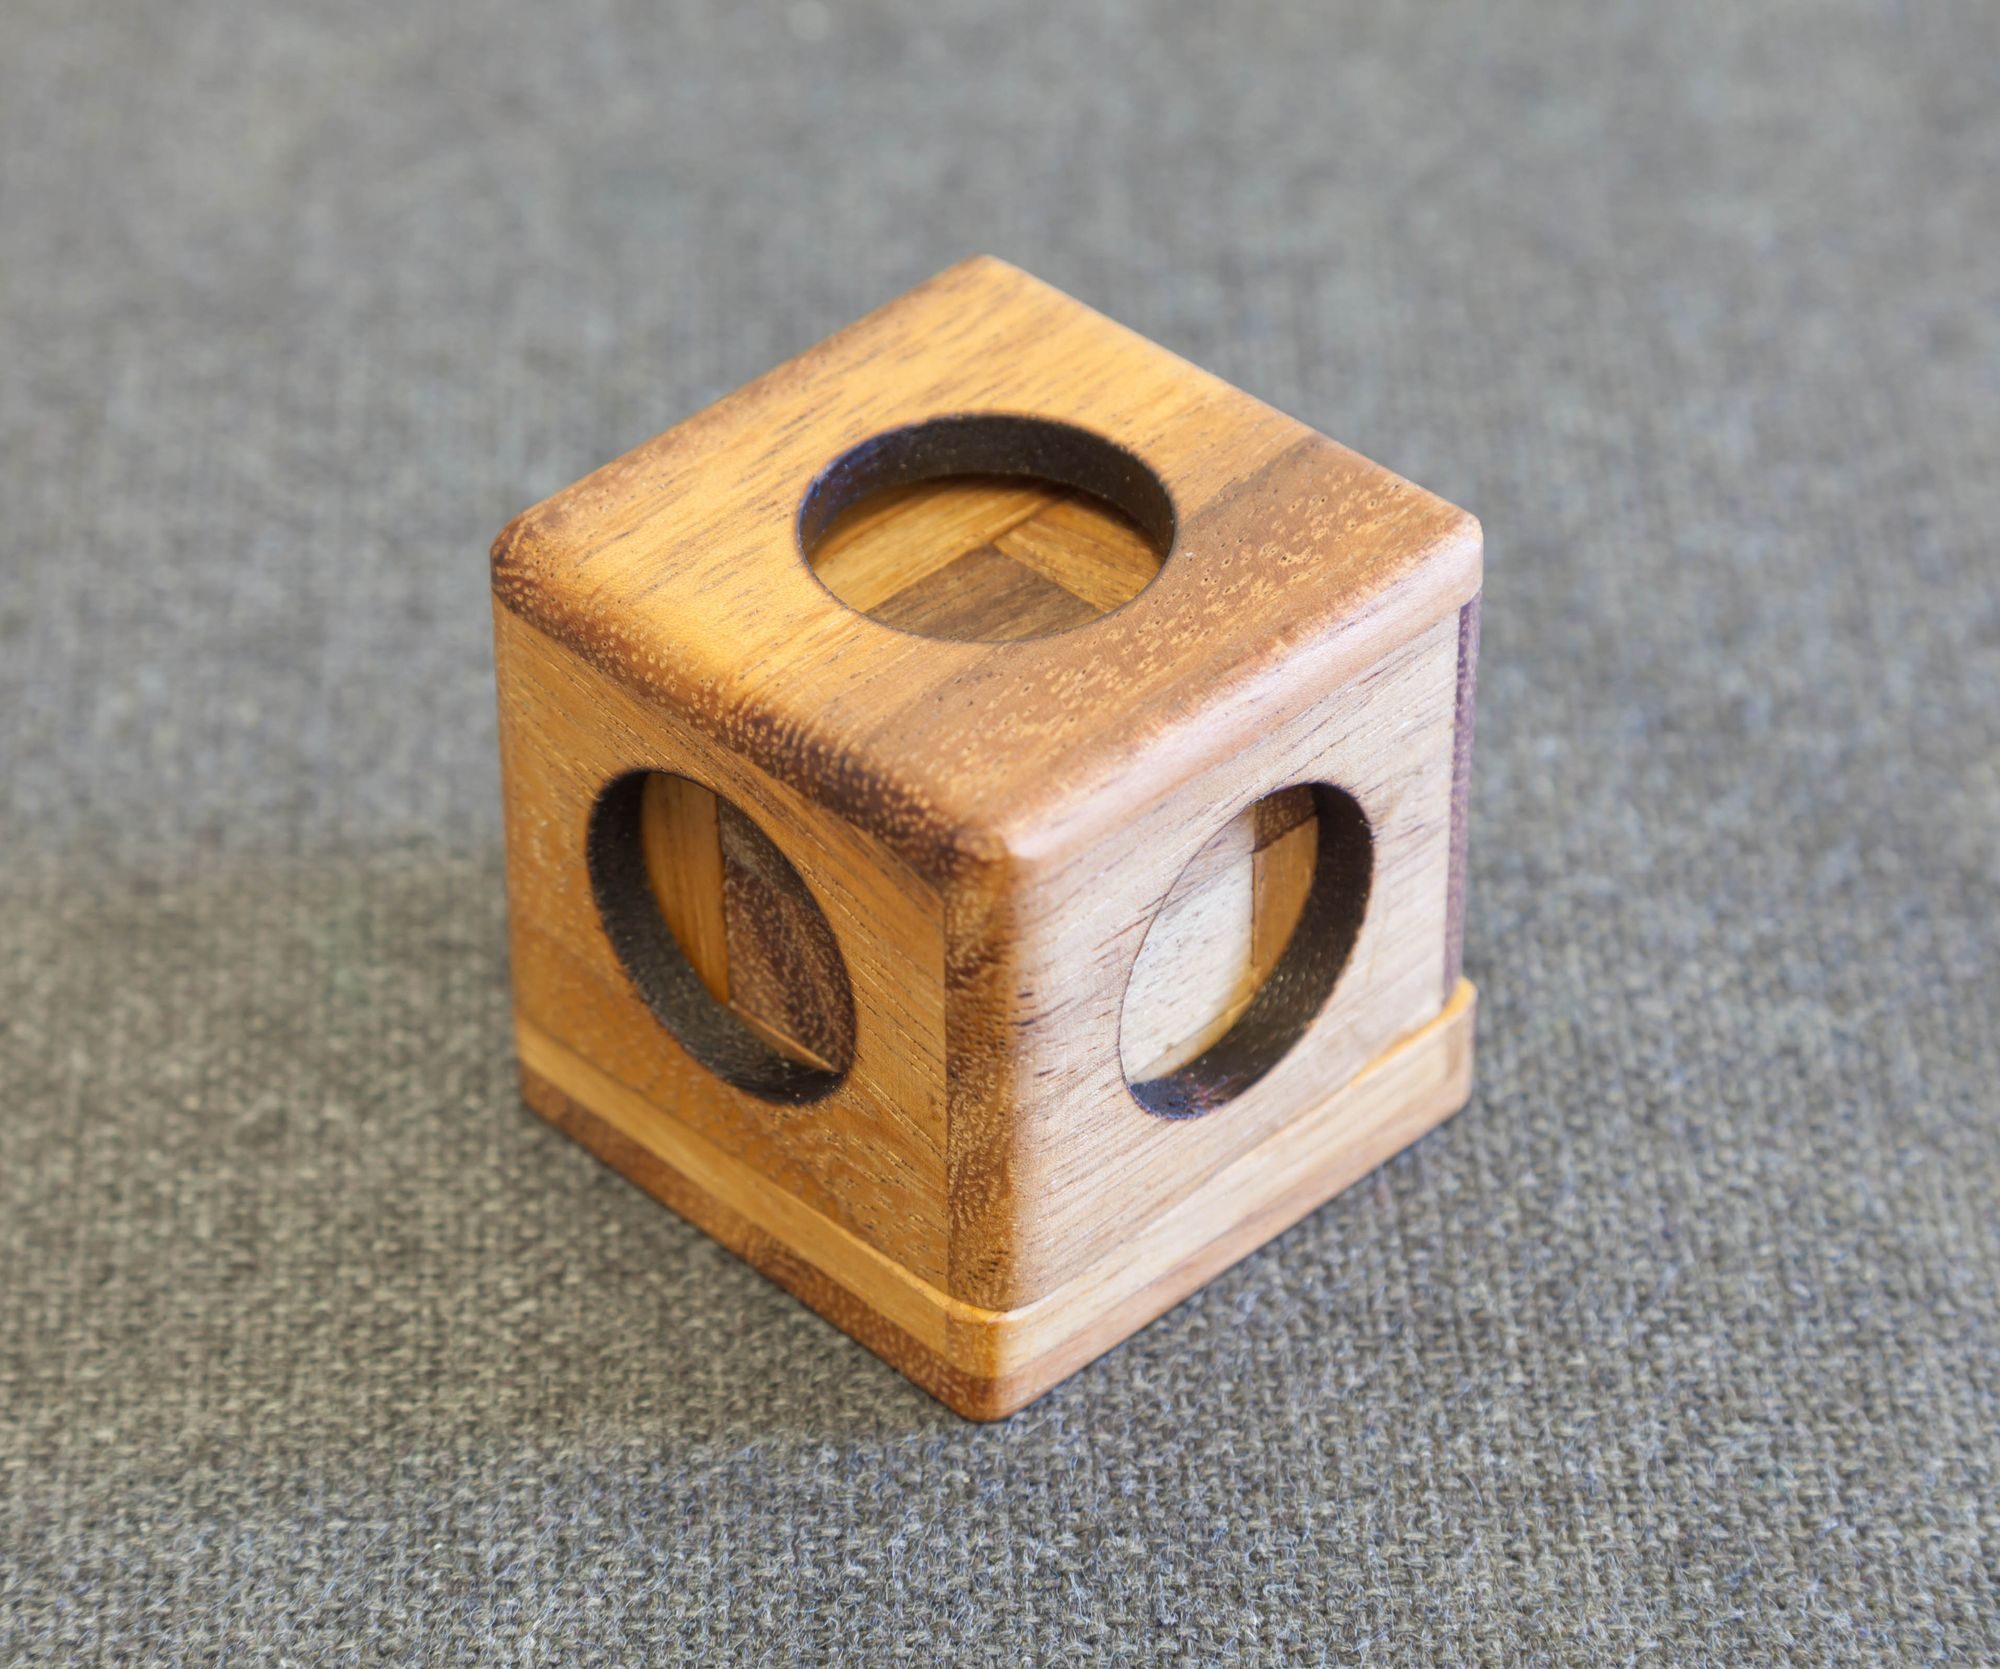 Solving the Soma cube in 3D